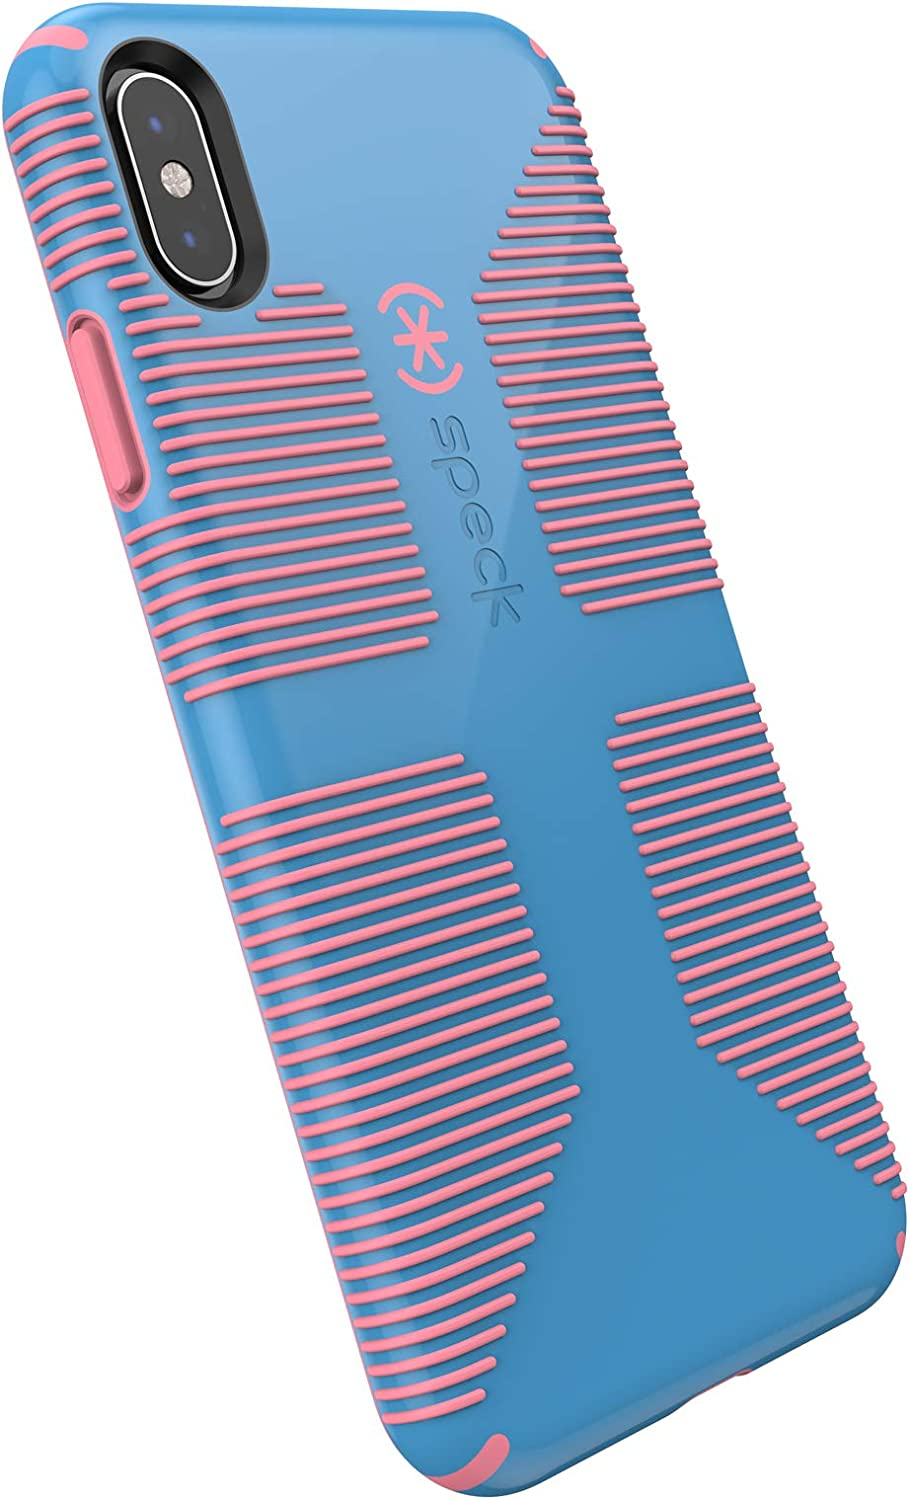 Speck Products iPhone Xs Max Case, CandyShell Grip, Azure Blue/Melon Pink